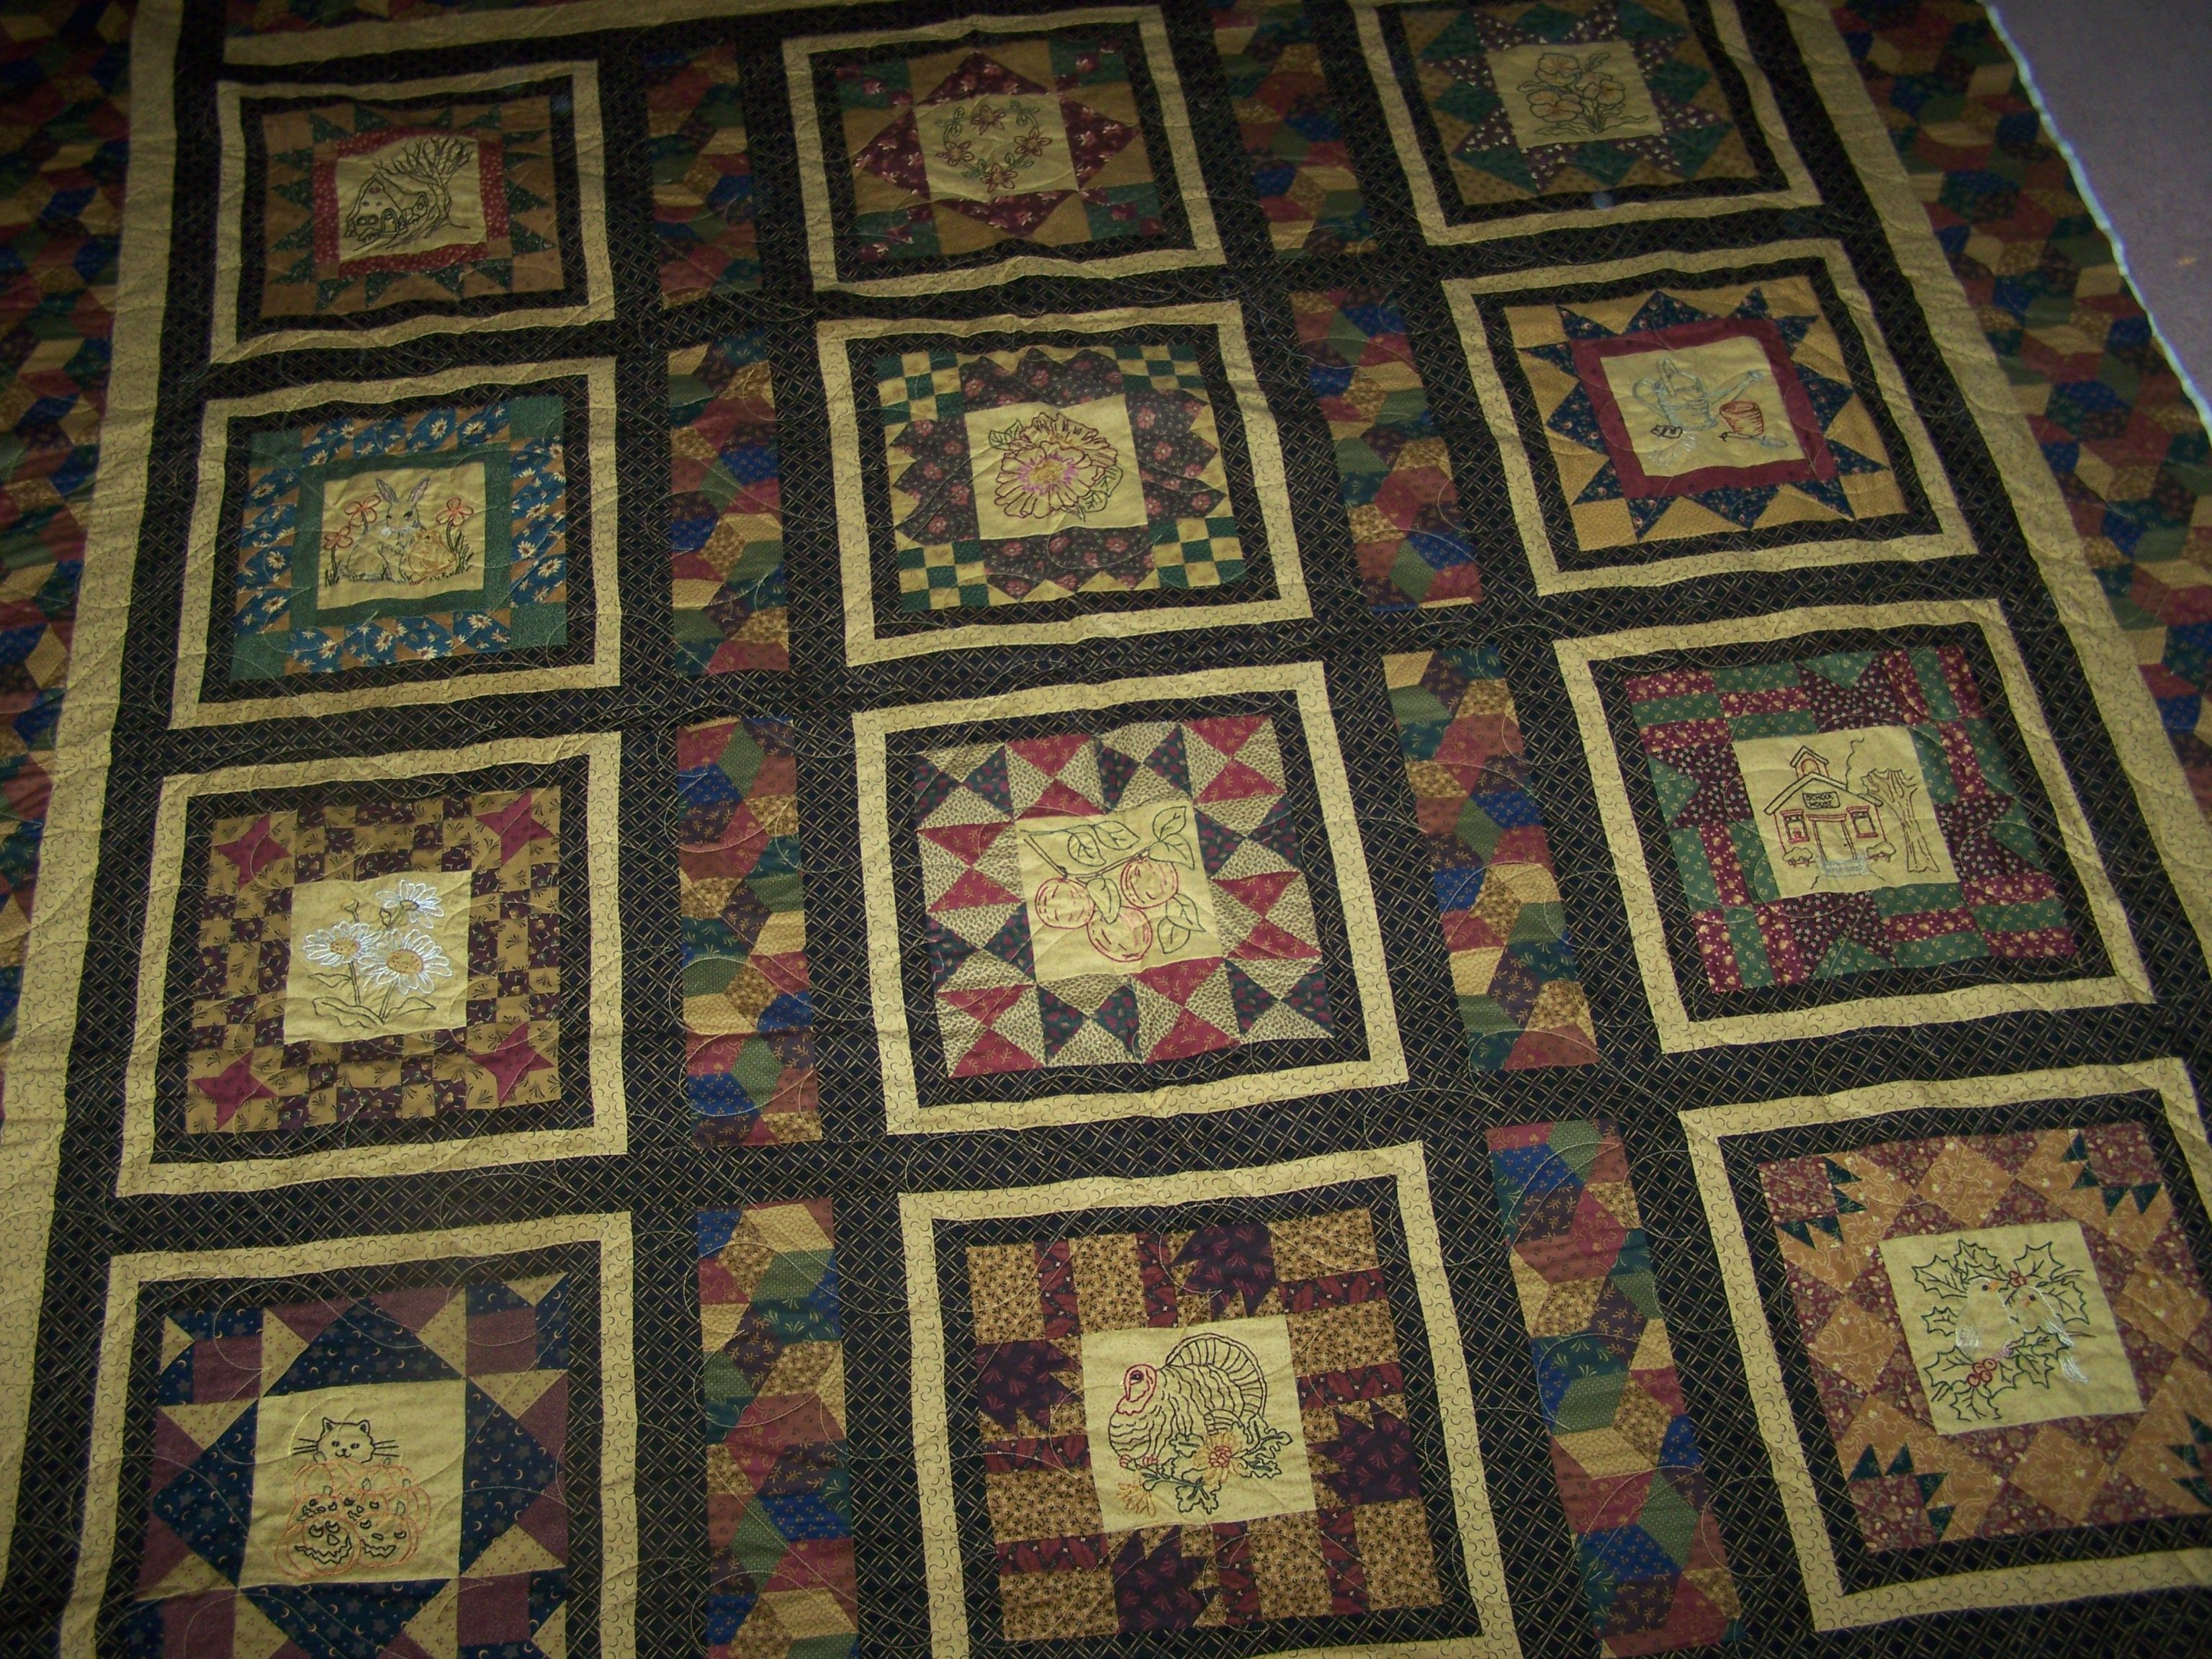 2006 Thimbleberries Block of the Month.